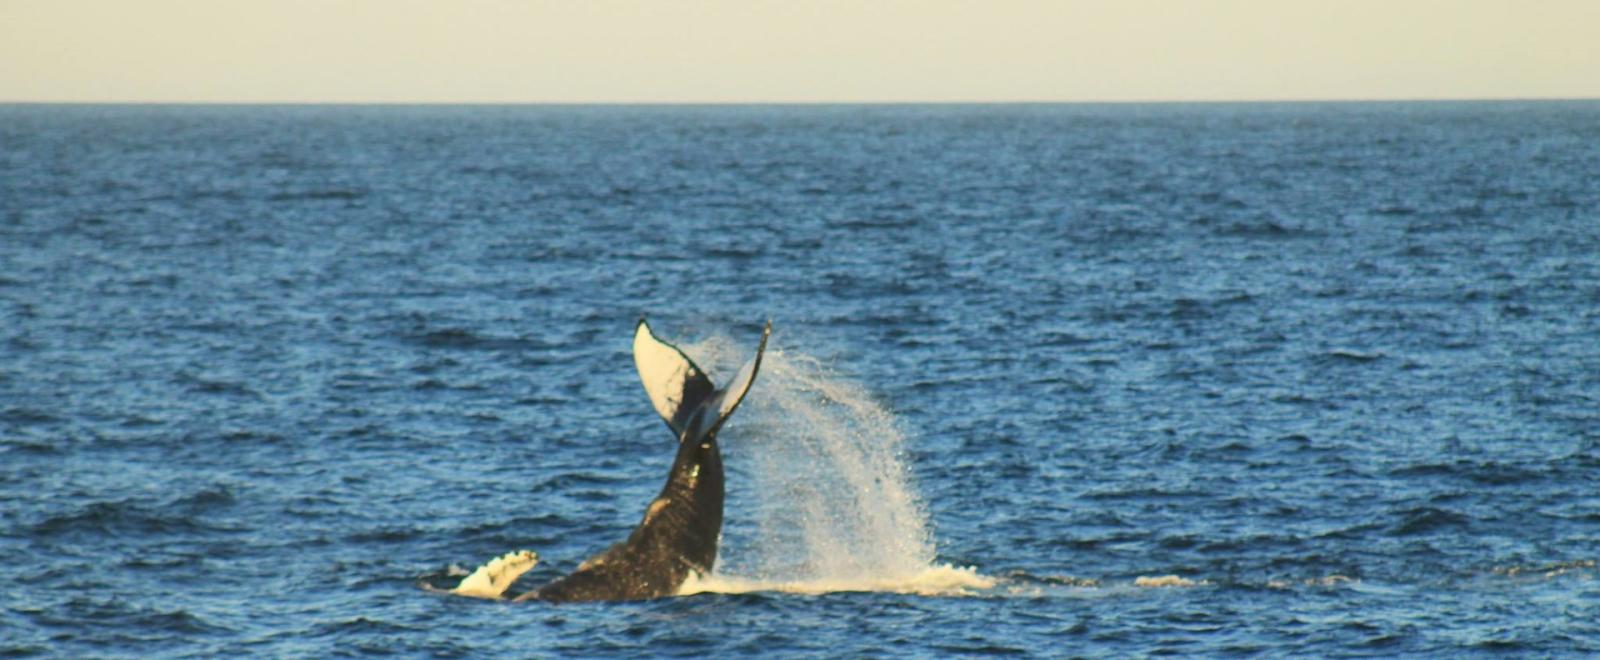 Whale & Puma Conservation in Patagonia